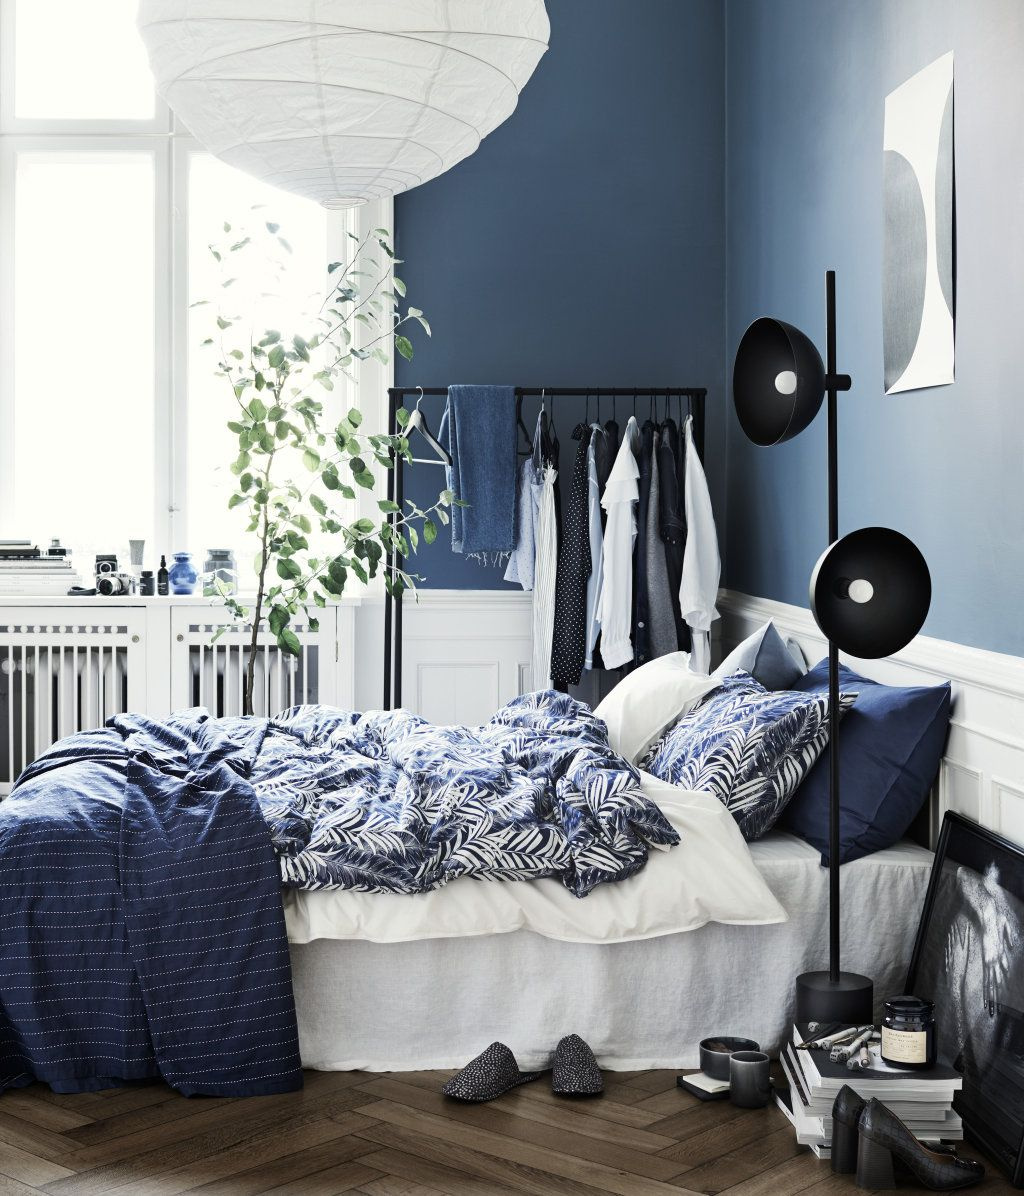 kopfkissenbezug dunkelblau home h m de decoration pinterest schlafzimmer. Black Bedroom Furniture Sets. Home Design Ideas